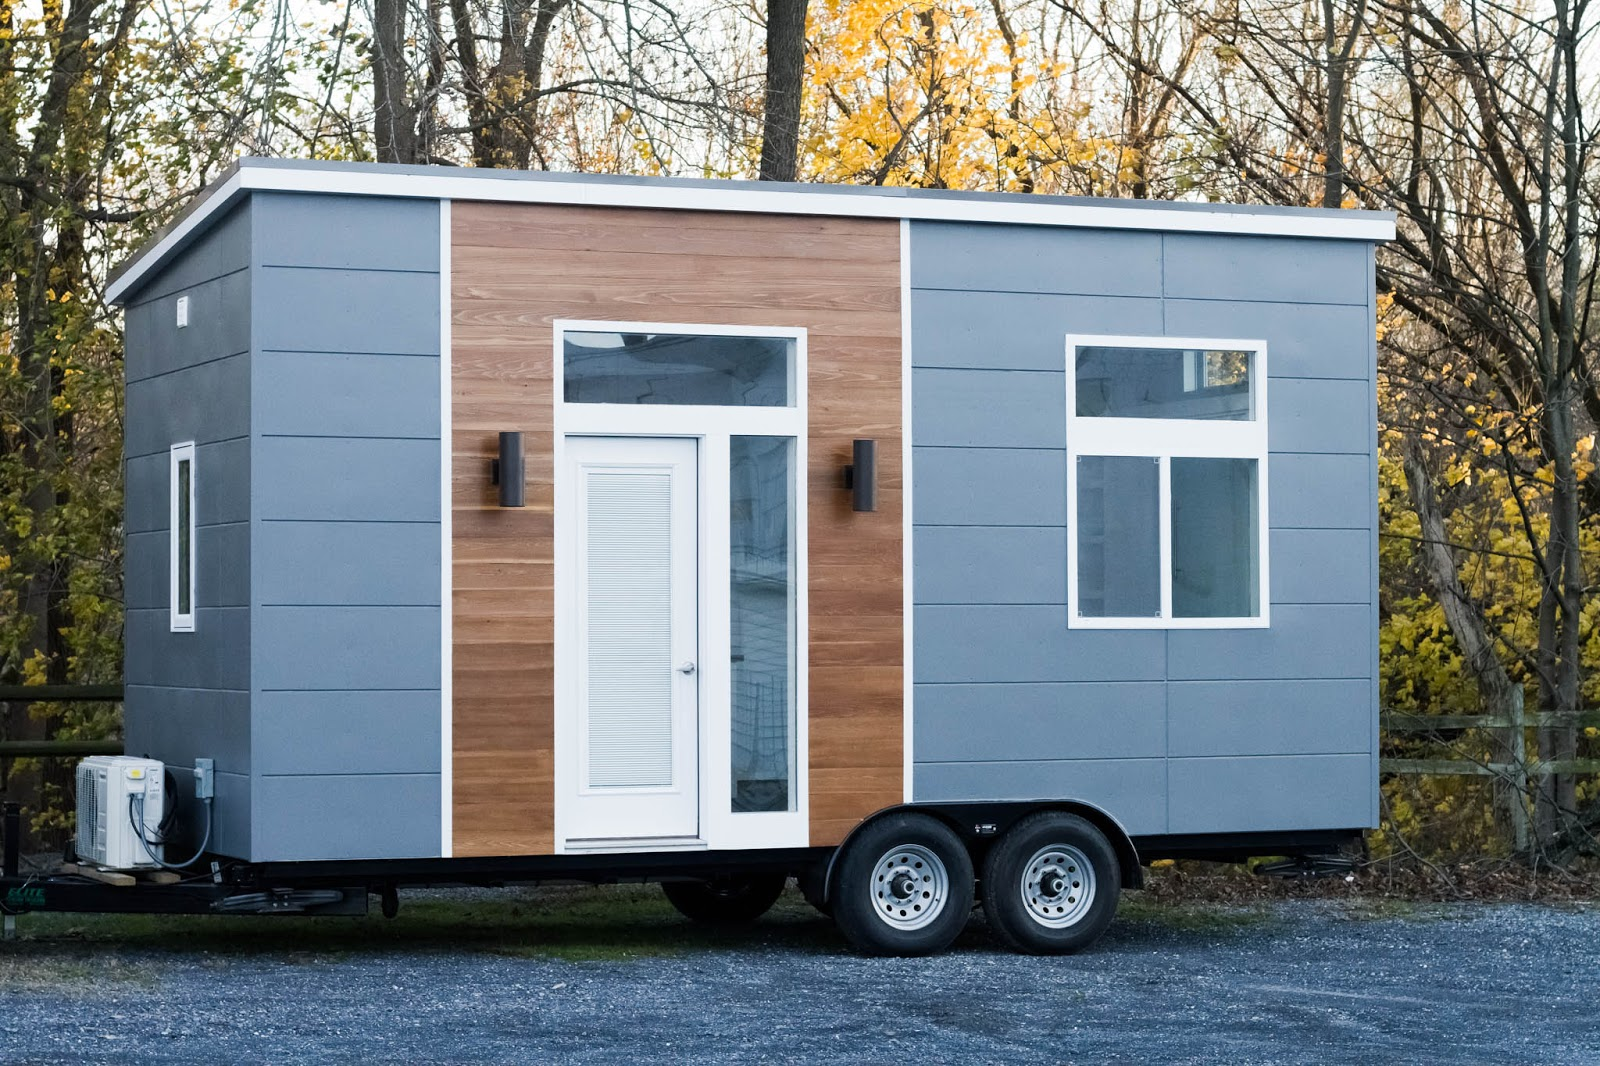 Tiny Home Designs: TINY HOUSE TOWN: Mid-Century Modern Tiny Home (170 Sq Ft